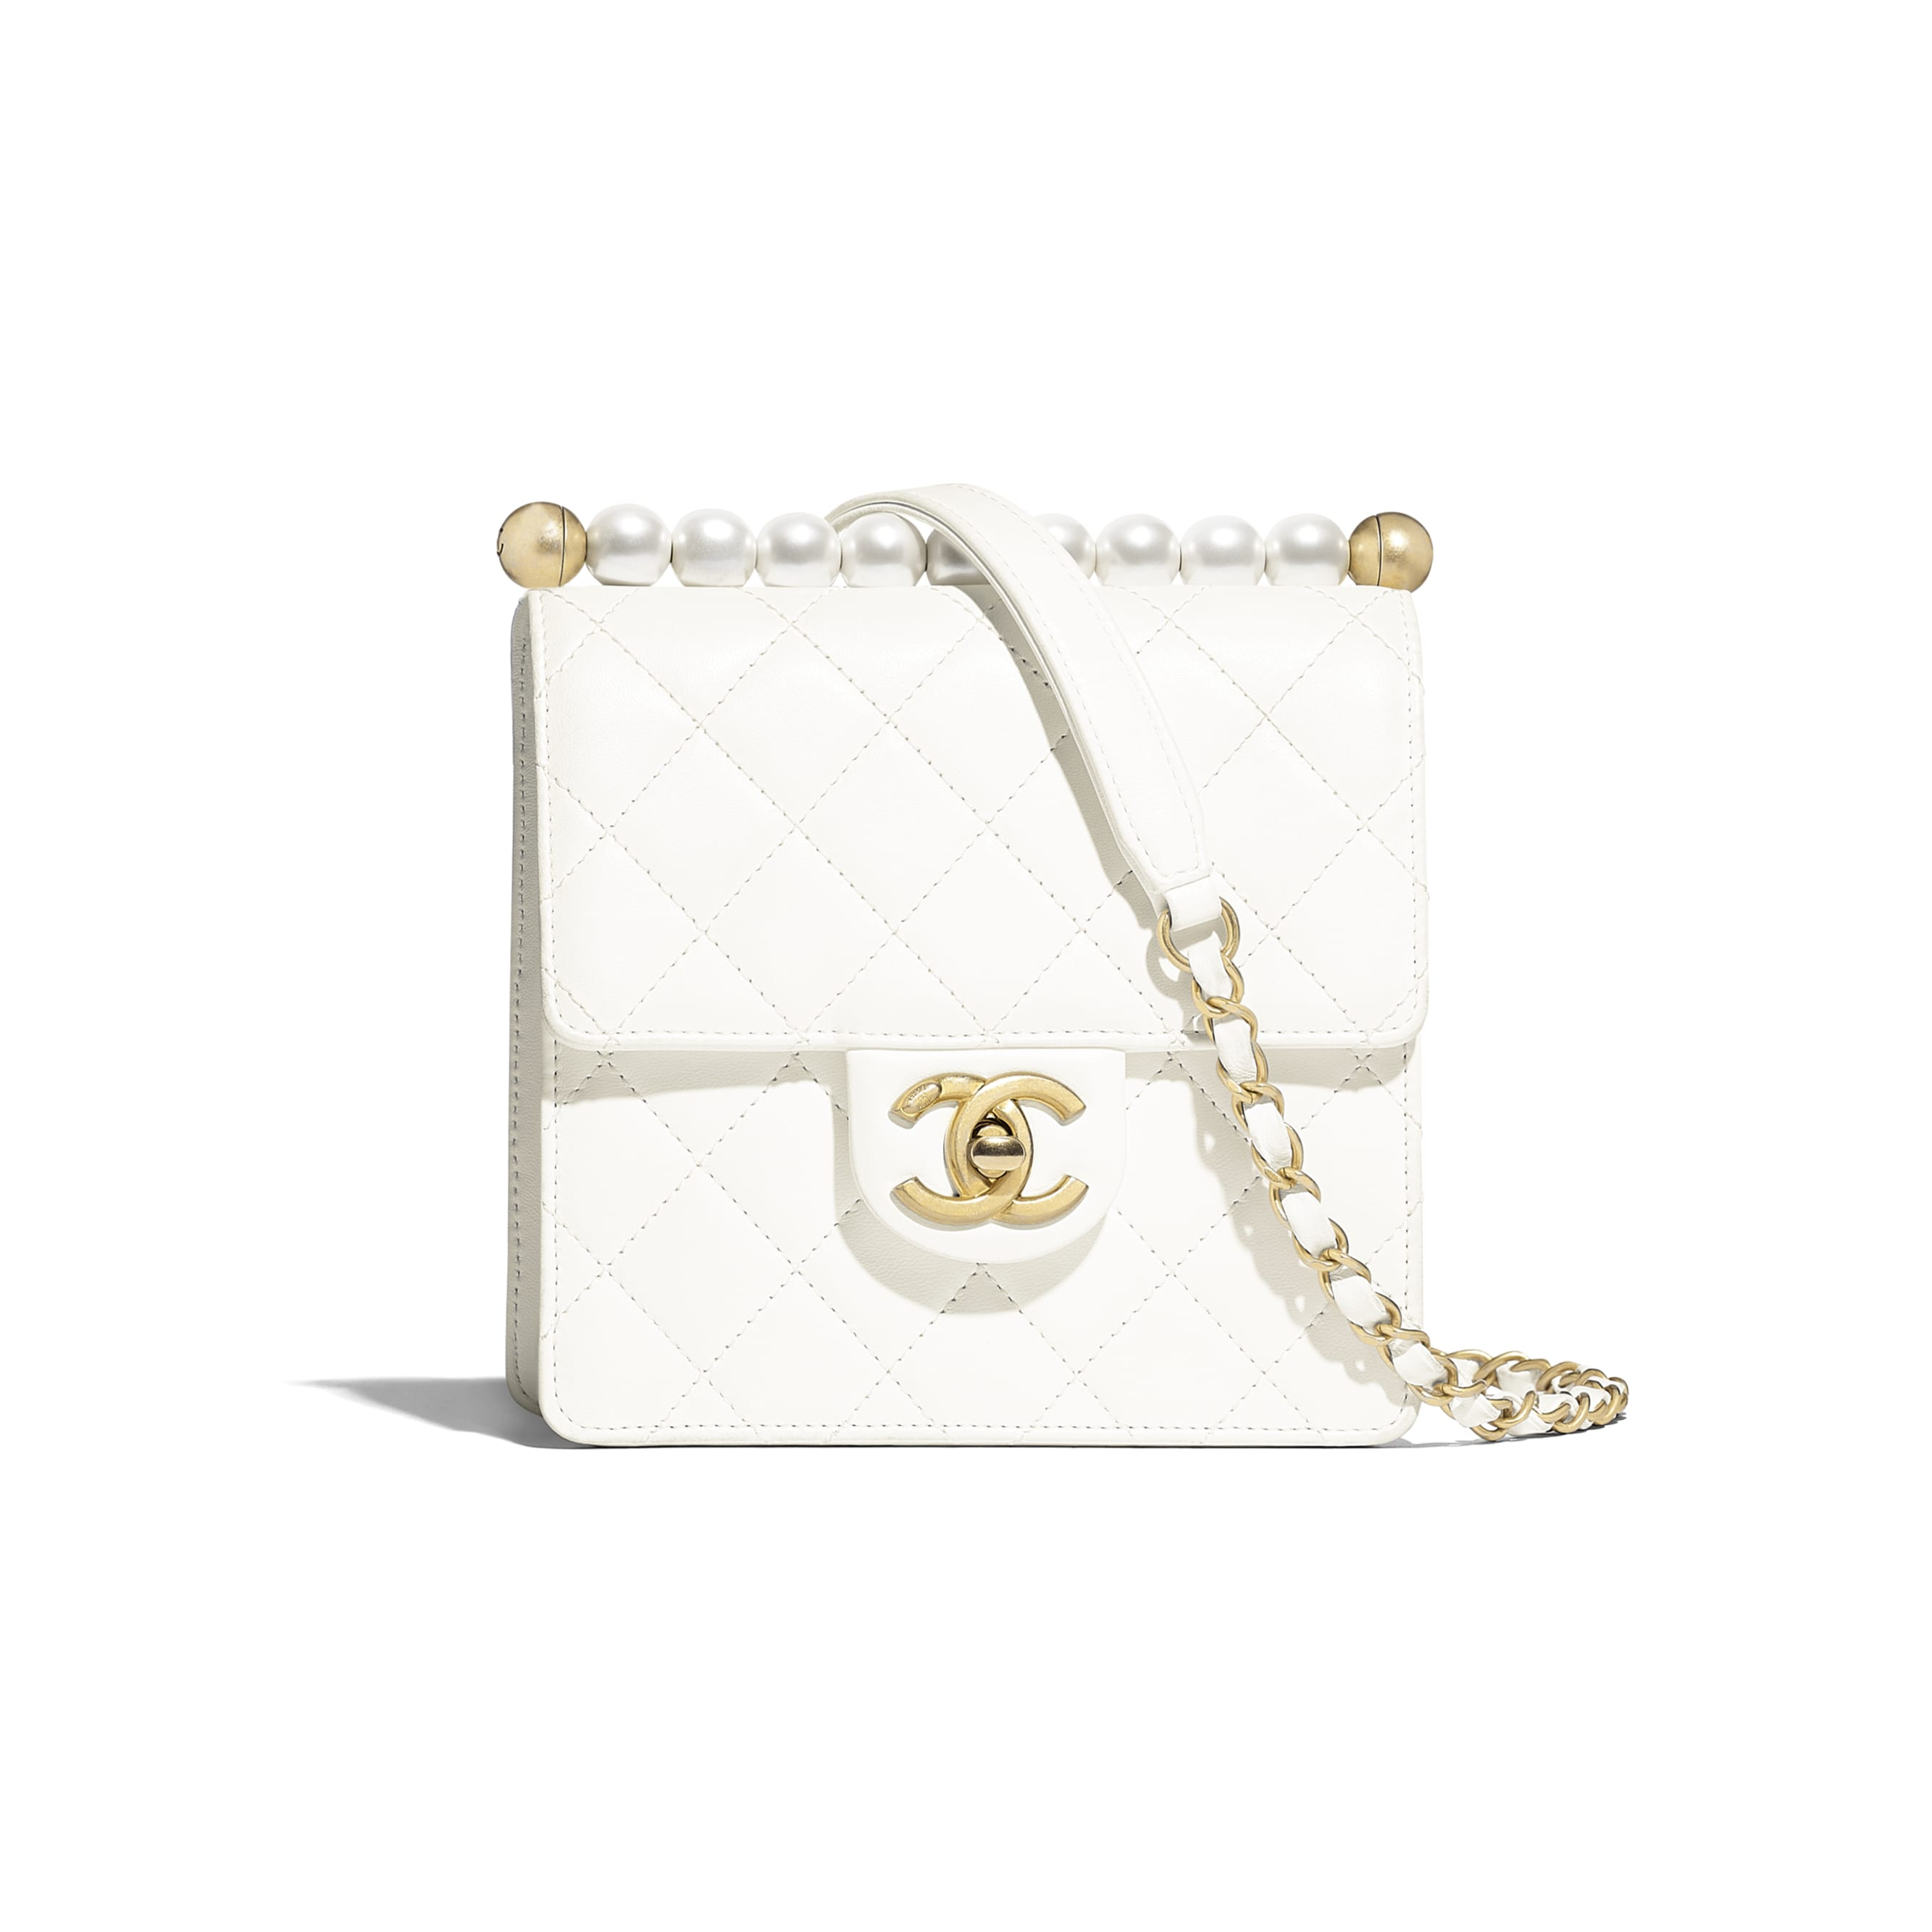 Flap Bag - White - Lambskin, Imitation Pearls & Gold-Tone Metal - Default view - see standard sized version